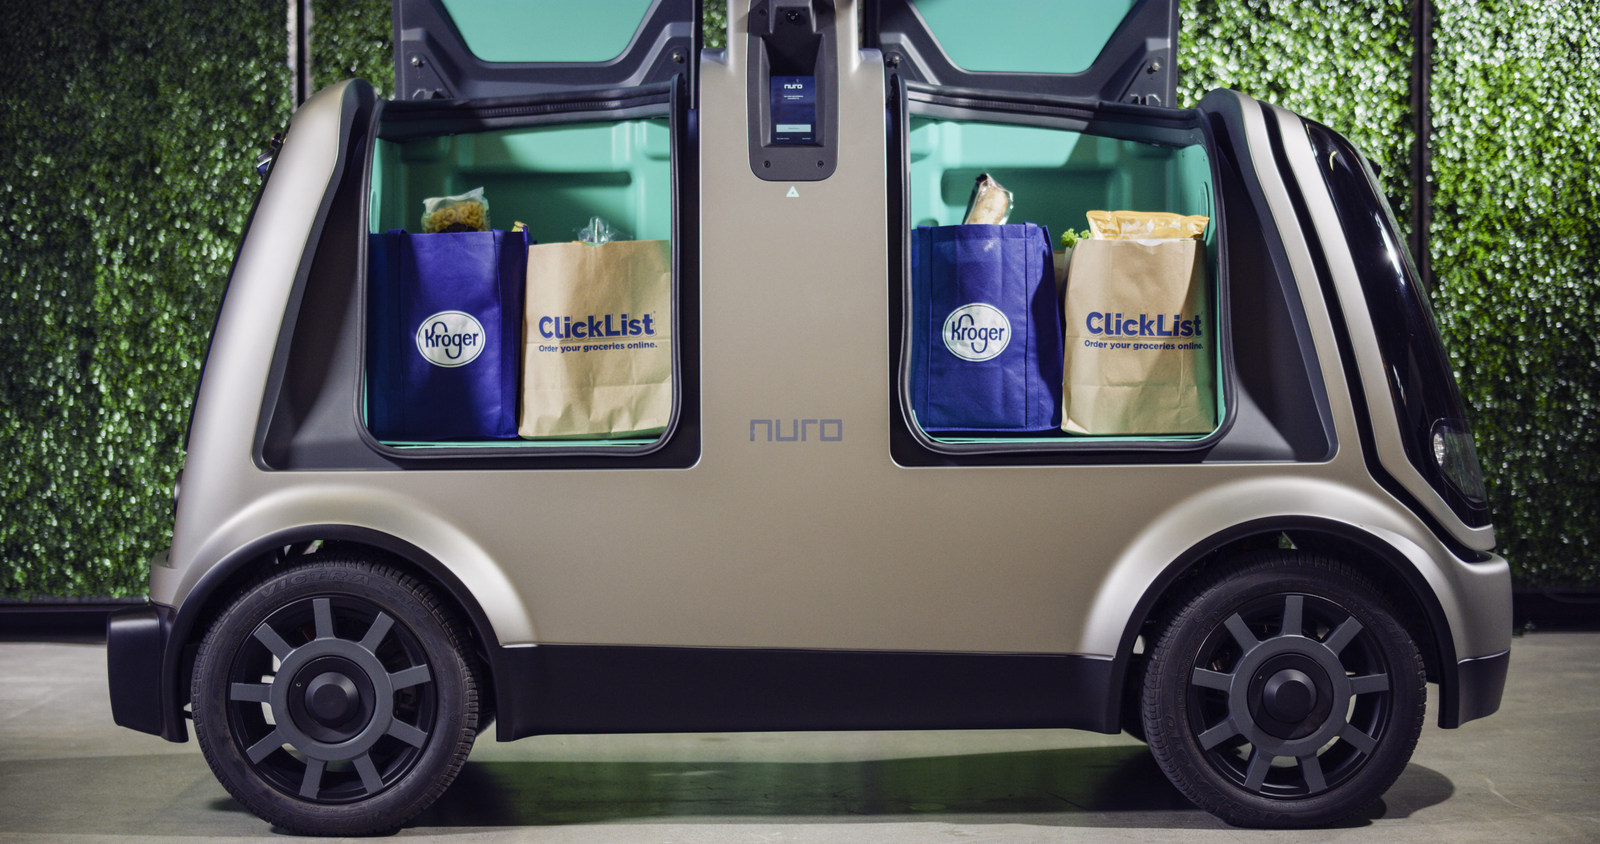 Kroger Wants to Deliver Groceries to Your Home Using Driverless Cars